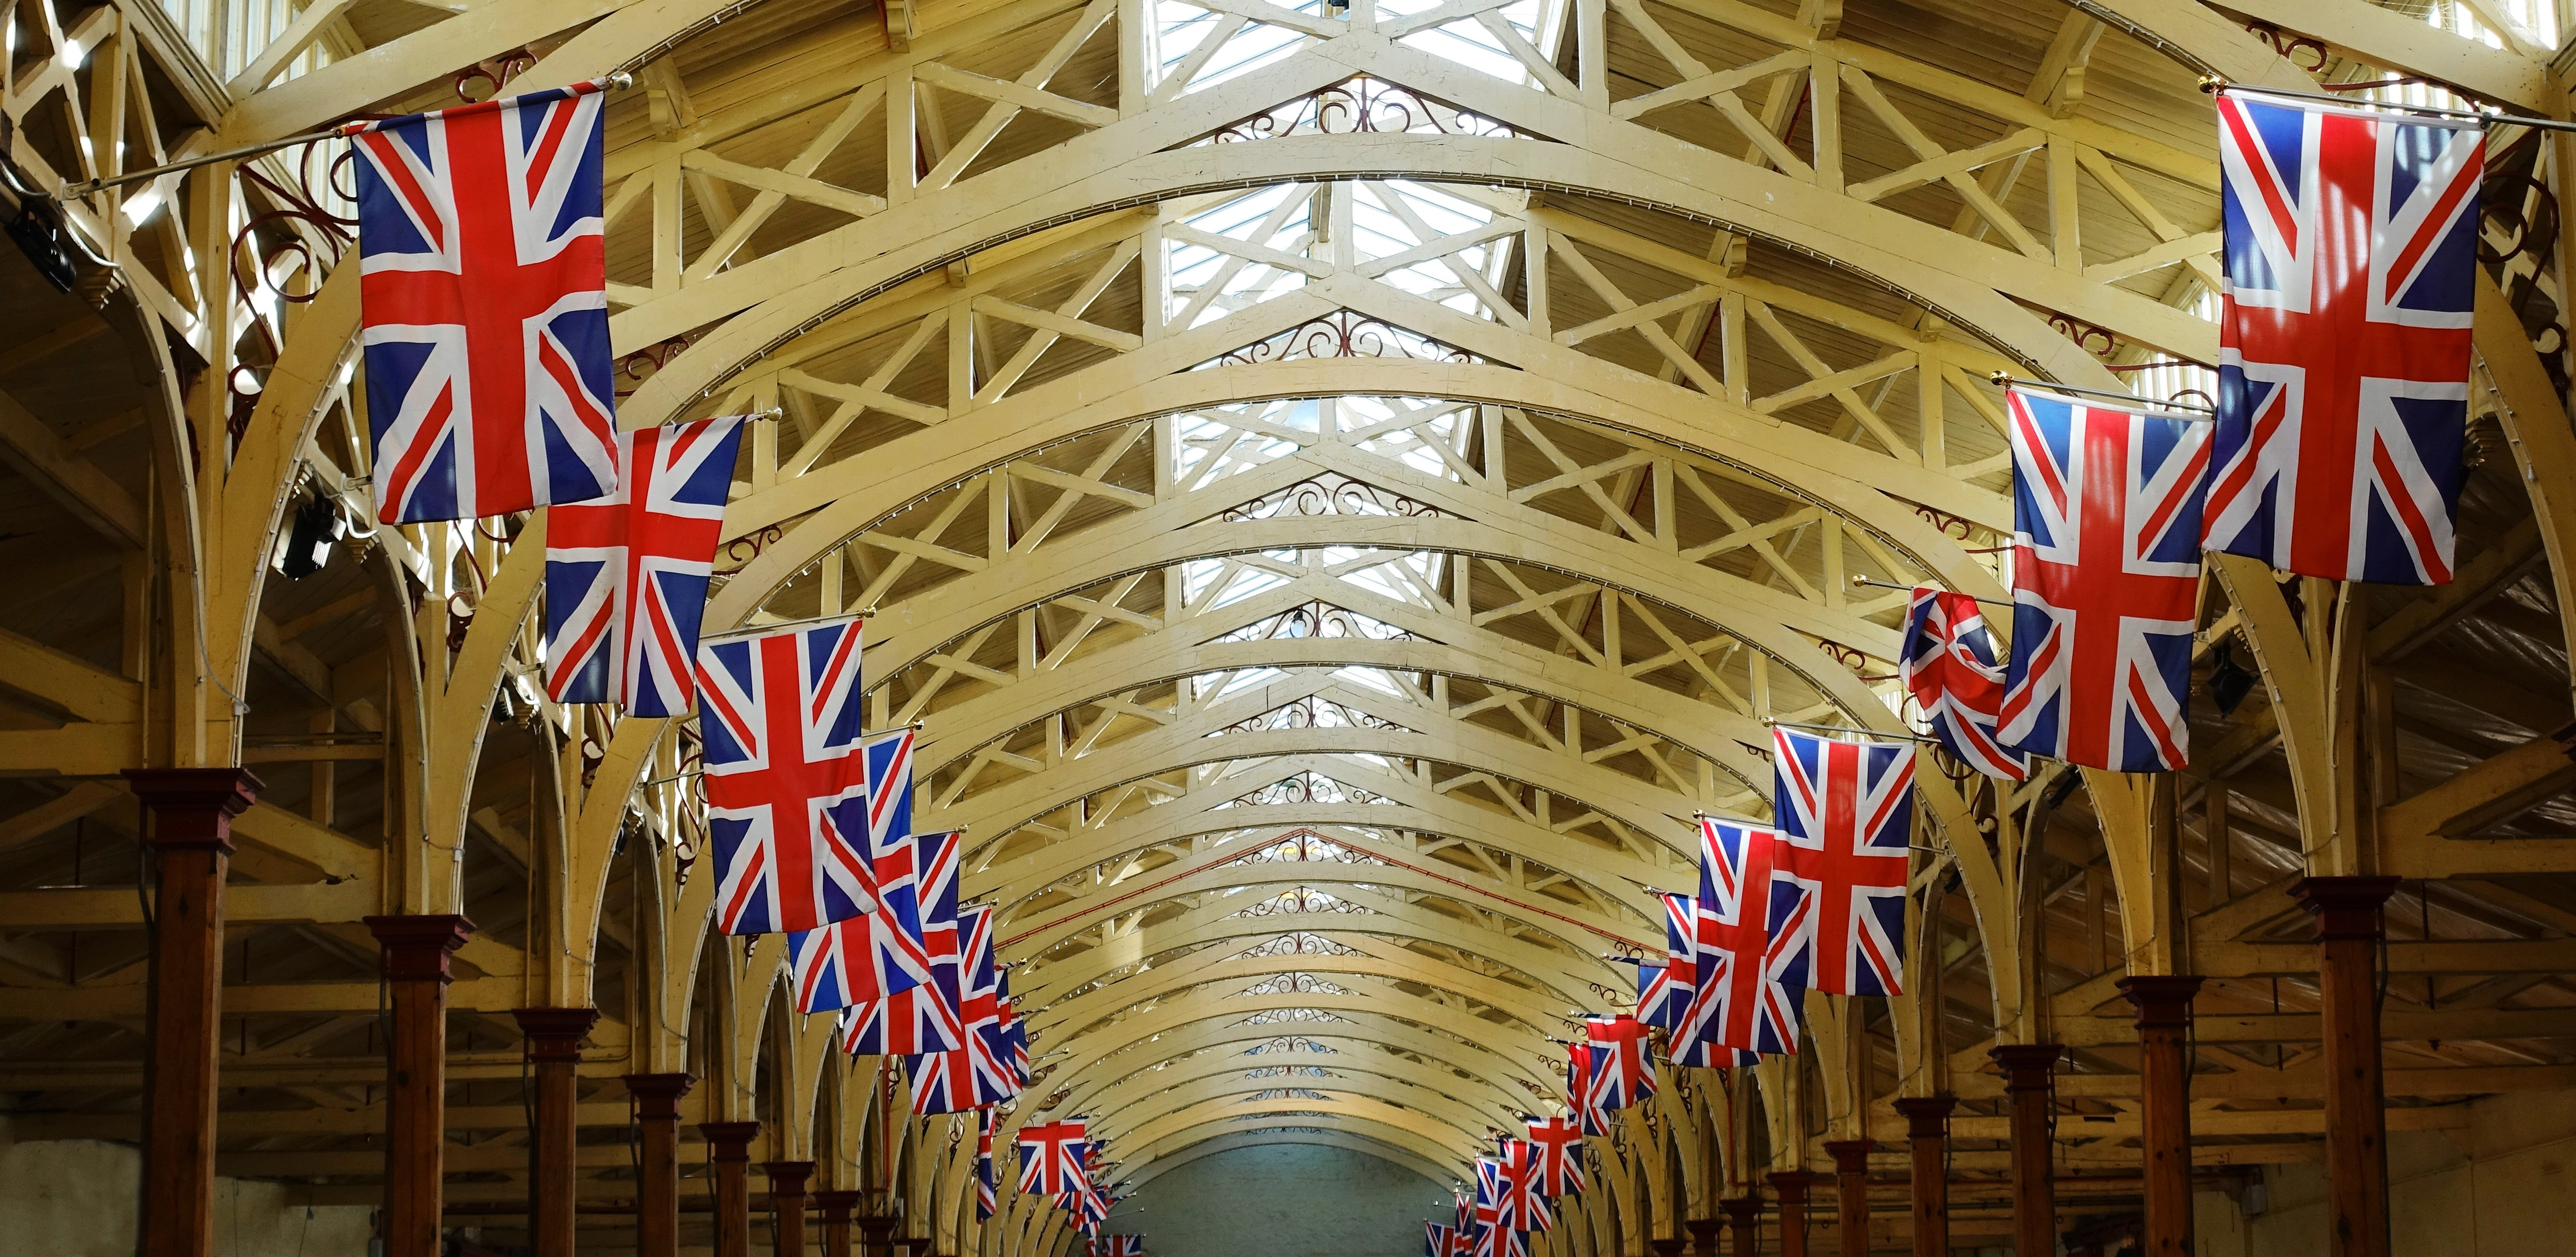 light-perspective-roof-building-celebration-arch-ceiling-hall-market-bunting-aisle-symmetry-flags-brexit-british-union-jack-britain-tourist-attraction-jubilee-devon-union-flag-barnstaple-hammer-beam-pannier-market-1389633.jpg